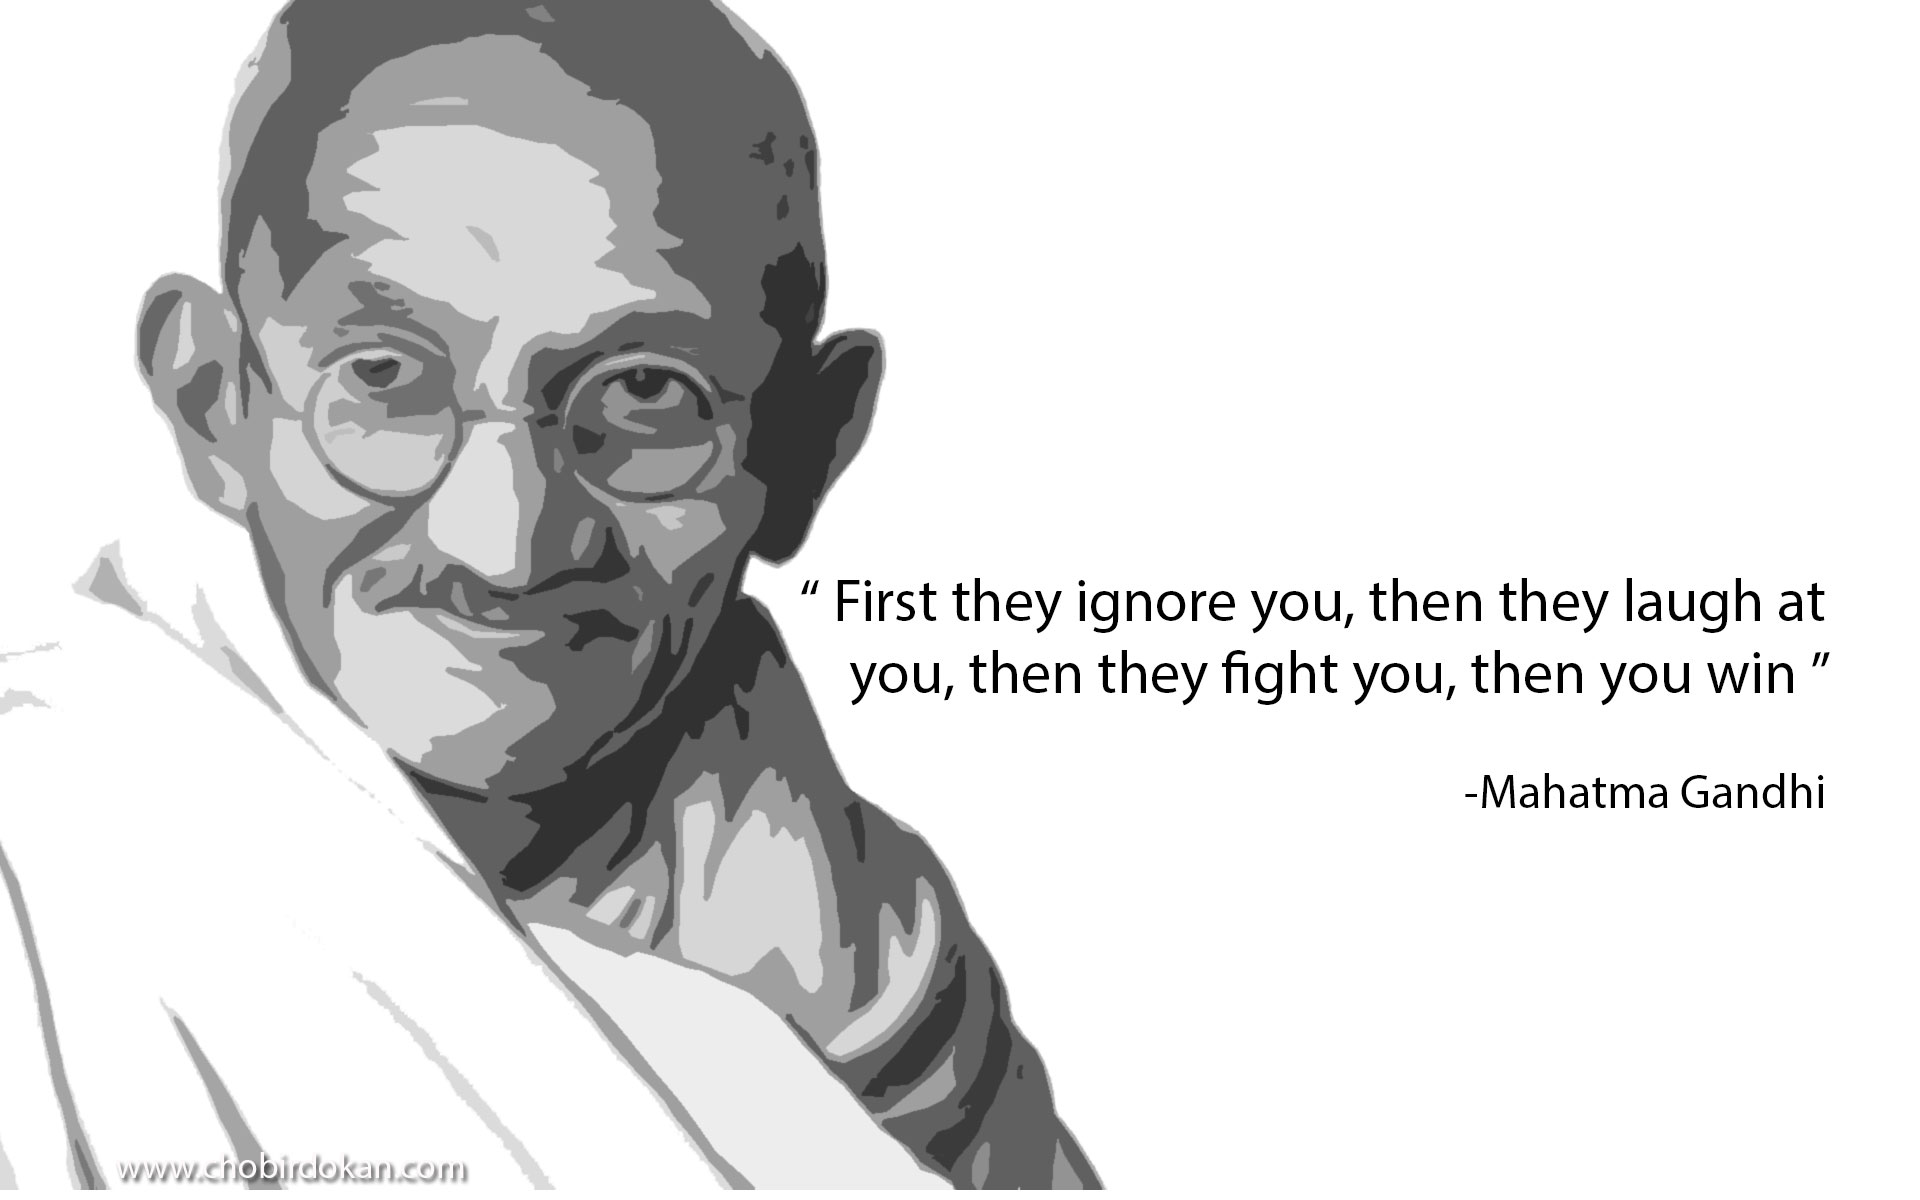 Gandhi Quotes On Love Mesmerizing Mahatma Gandhi Short Quotes On Love And Life